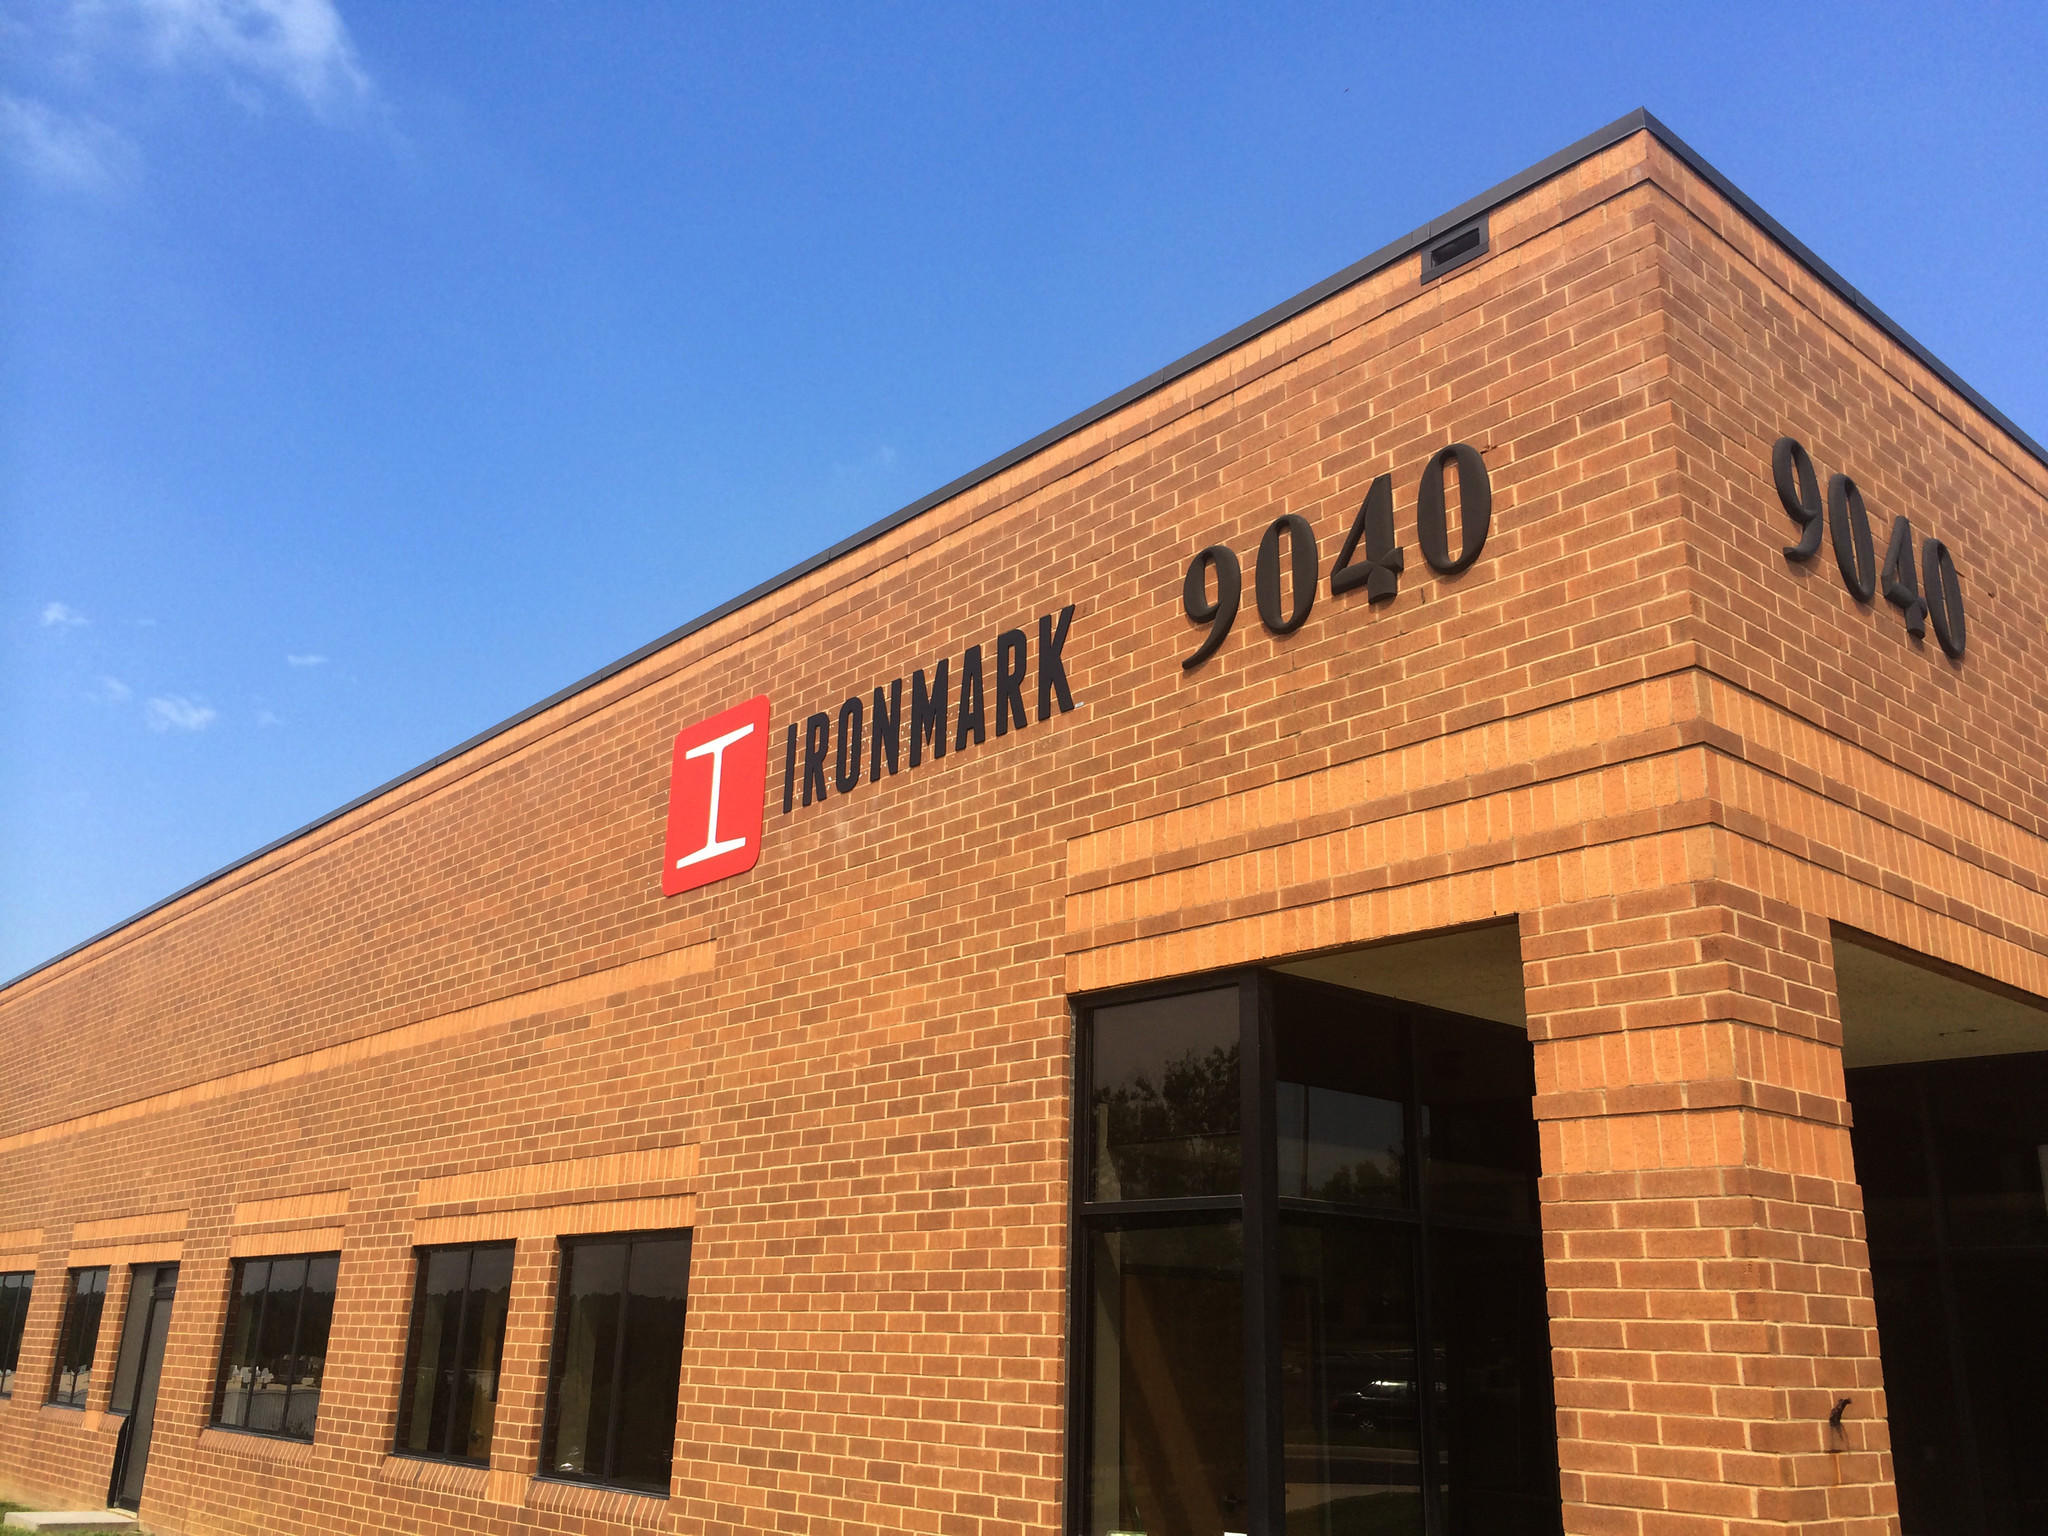 Ironmark is scheduled to open its new headquarters building in Annapolis Junction on Oct. 8.